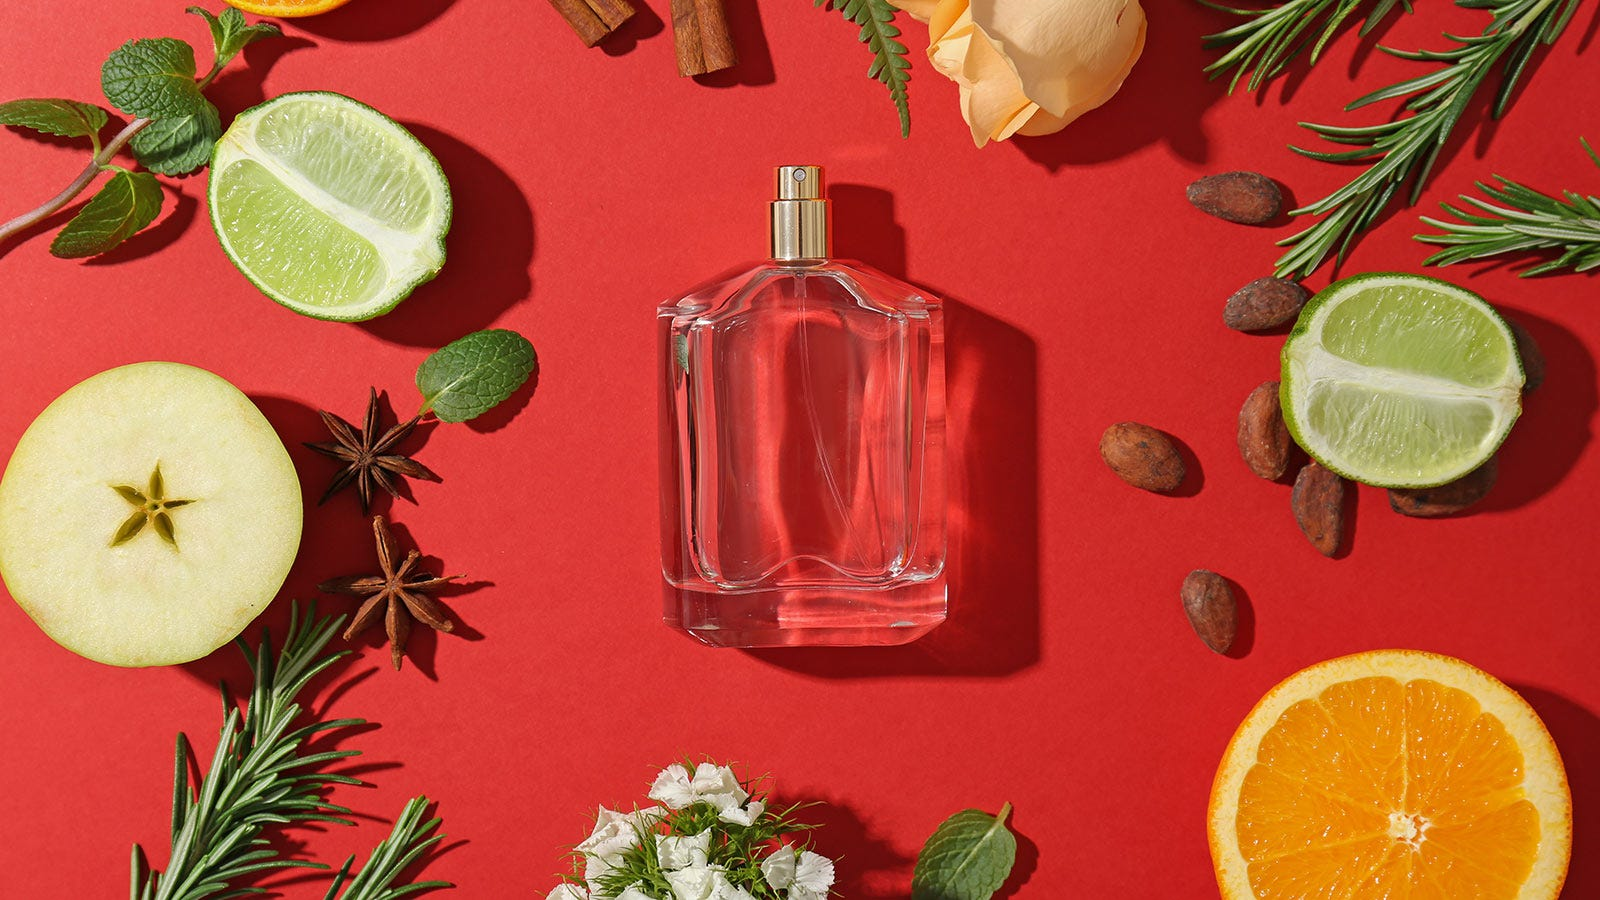 An empty perfume bottle surrounded by fruits, nuts, and green sprigs.